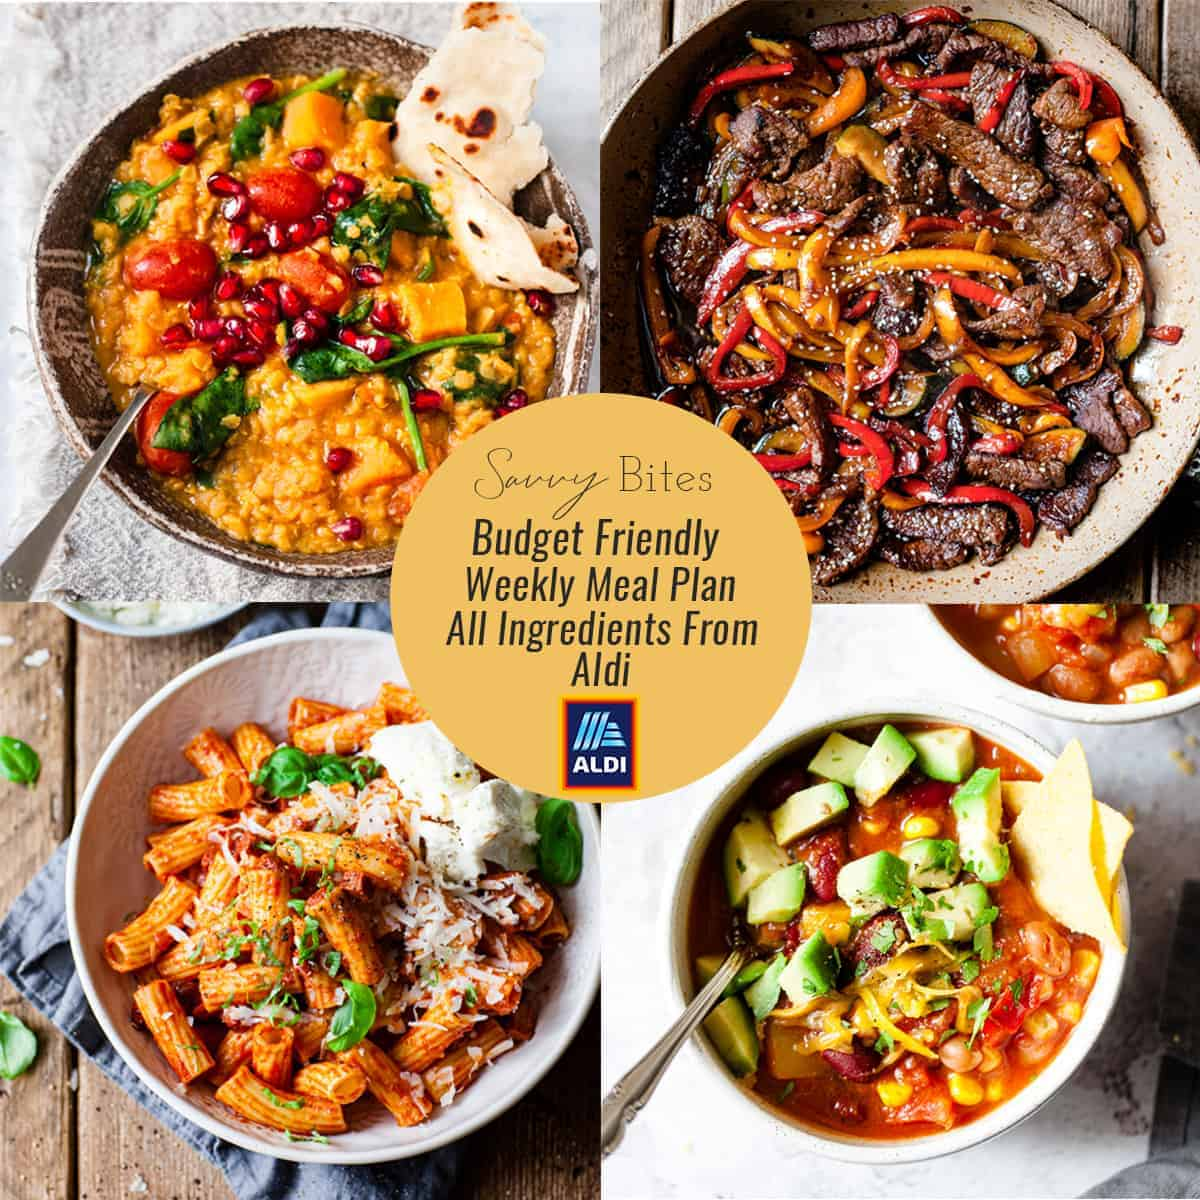 Aldi budget friendly meal plan for healthy family meals.